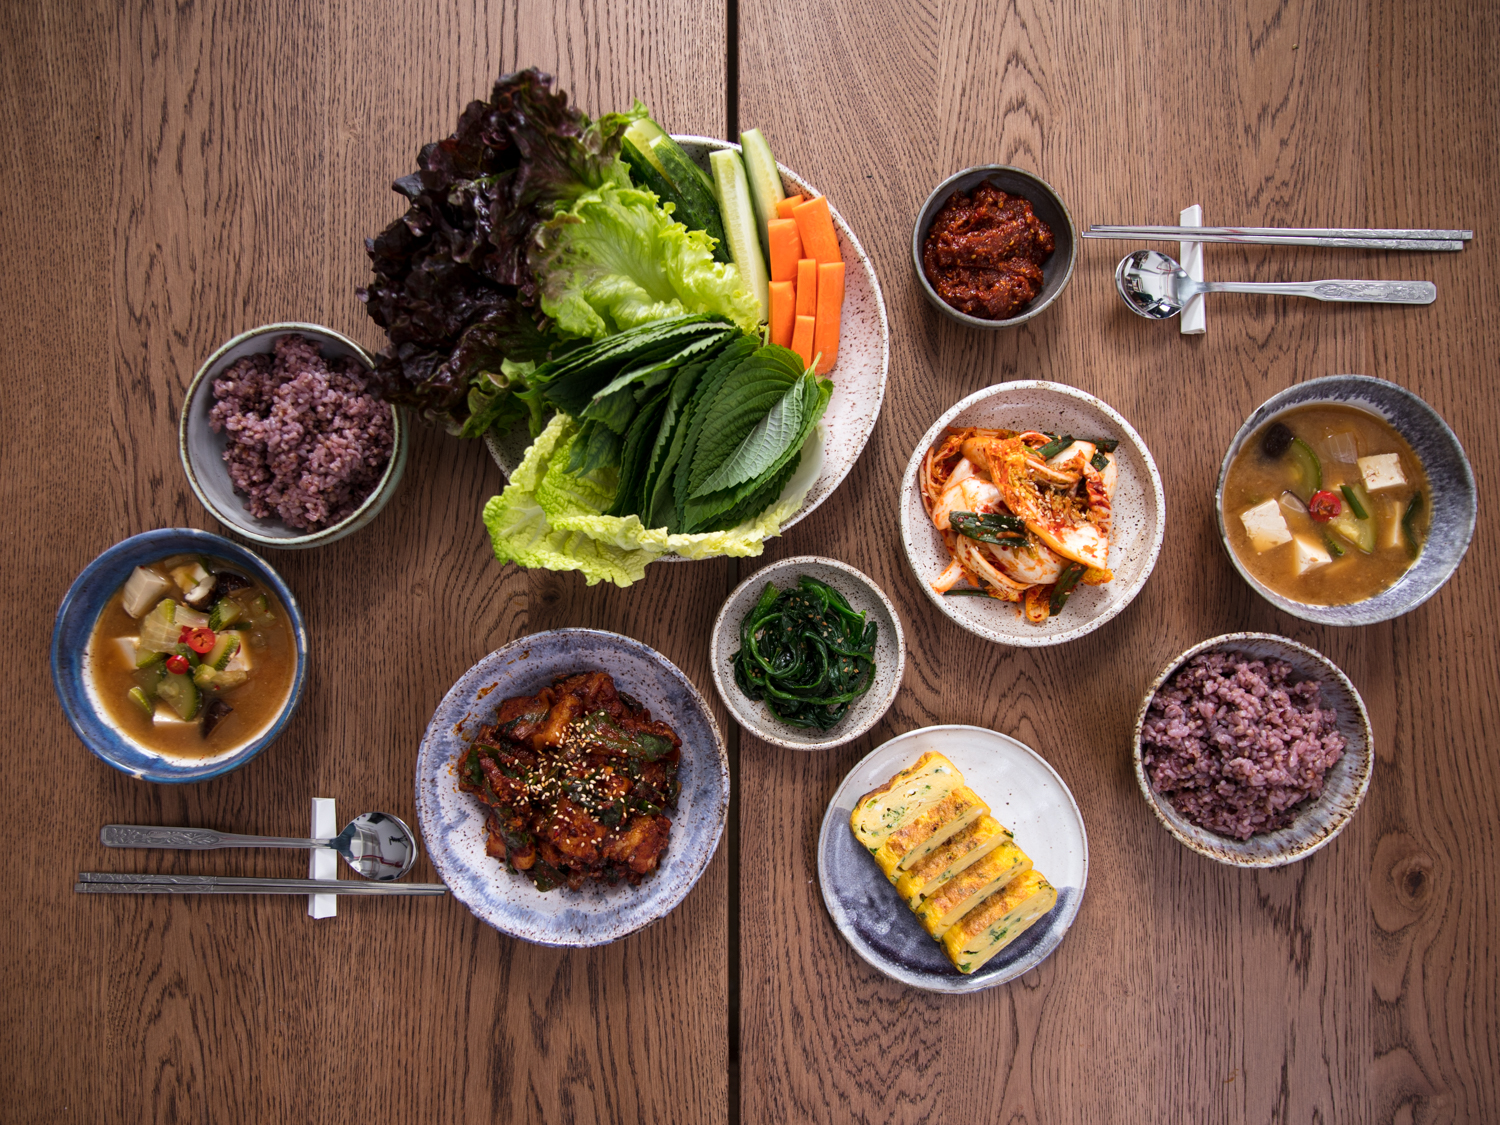 korean-meal-vicky-wasik-1-2